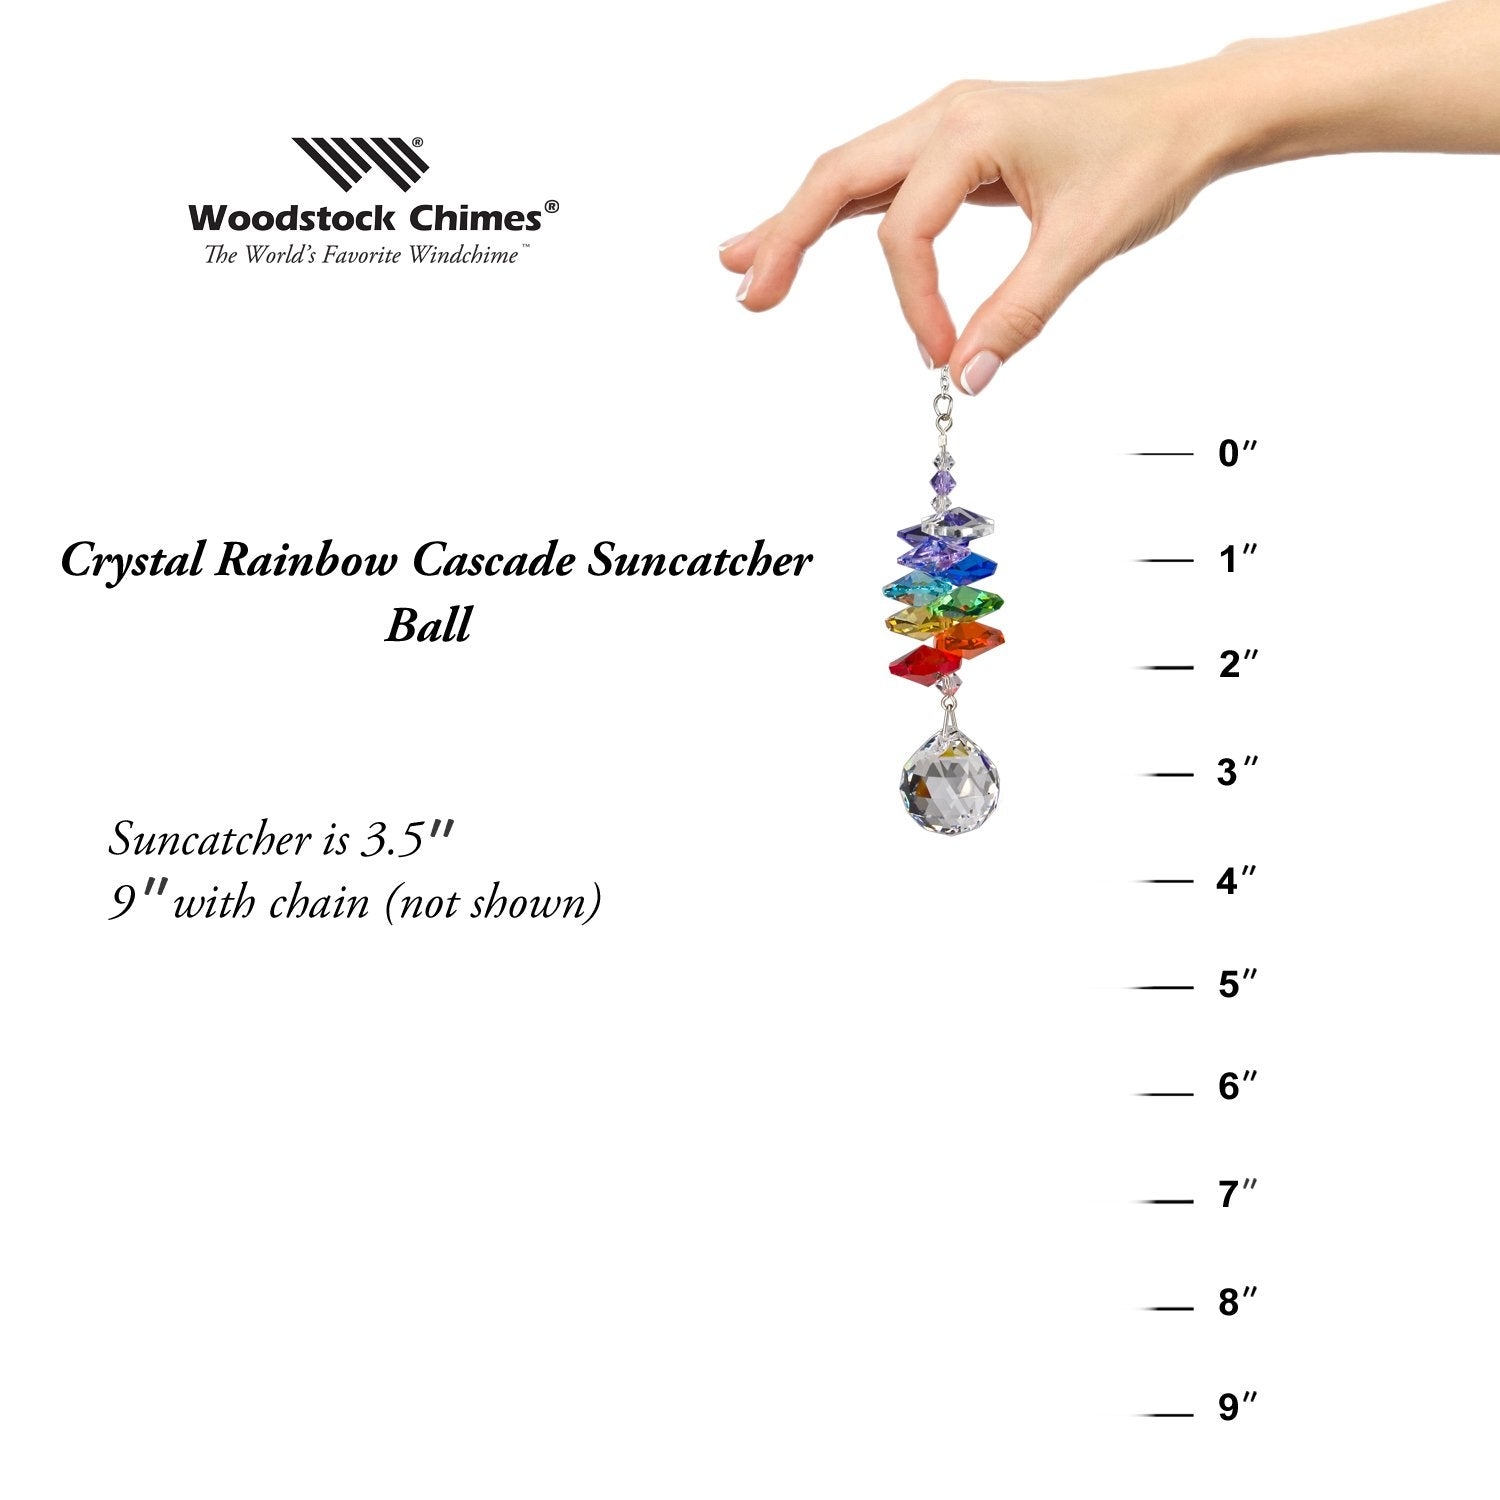 Crystal Rainbow Cascade Suncatcher - Almond proportion image